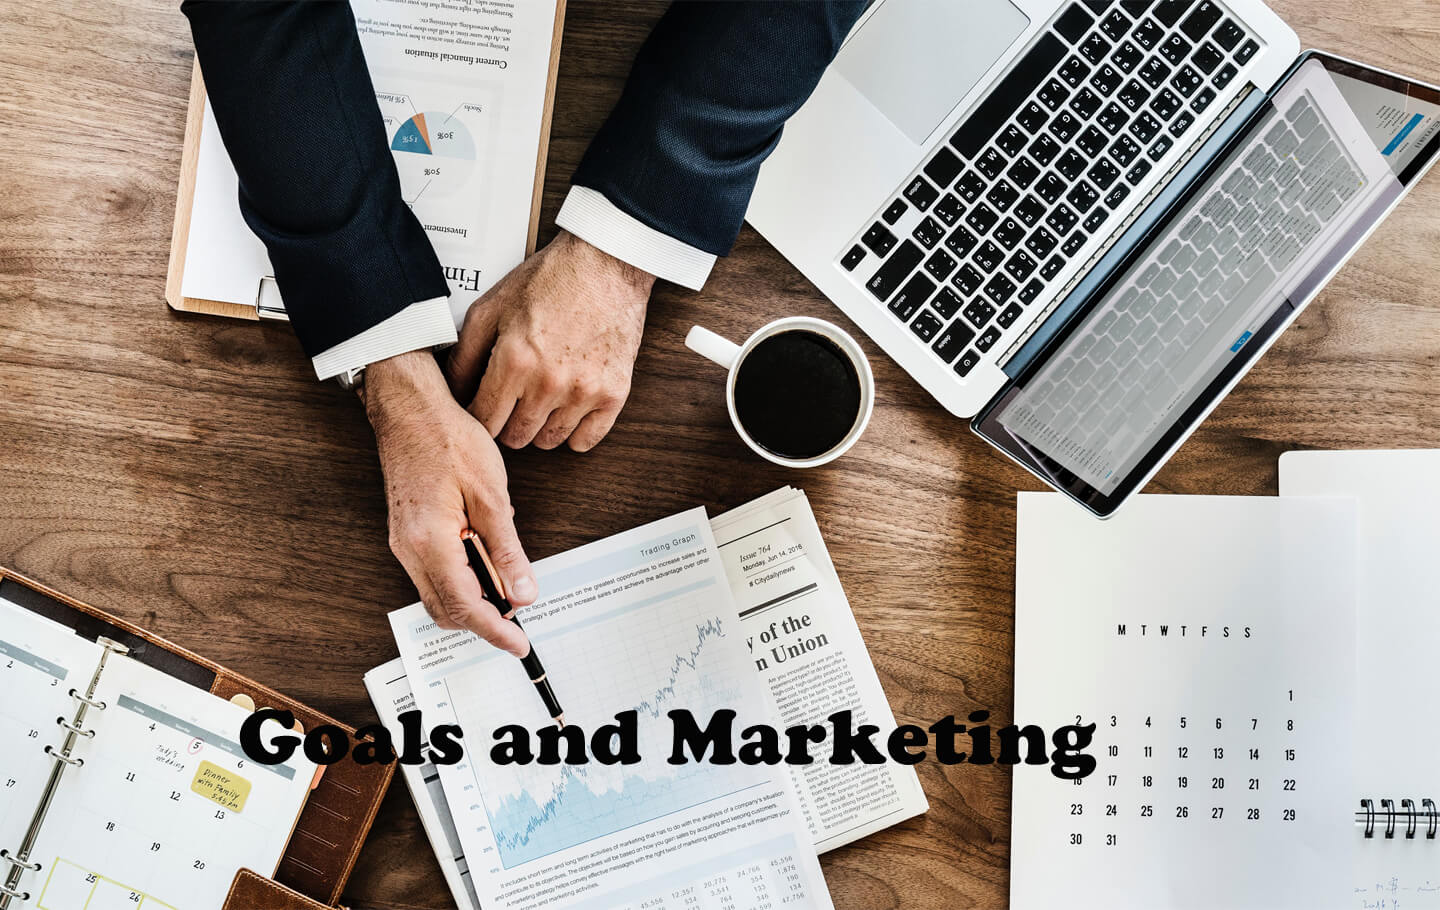 Goals and Marketing